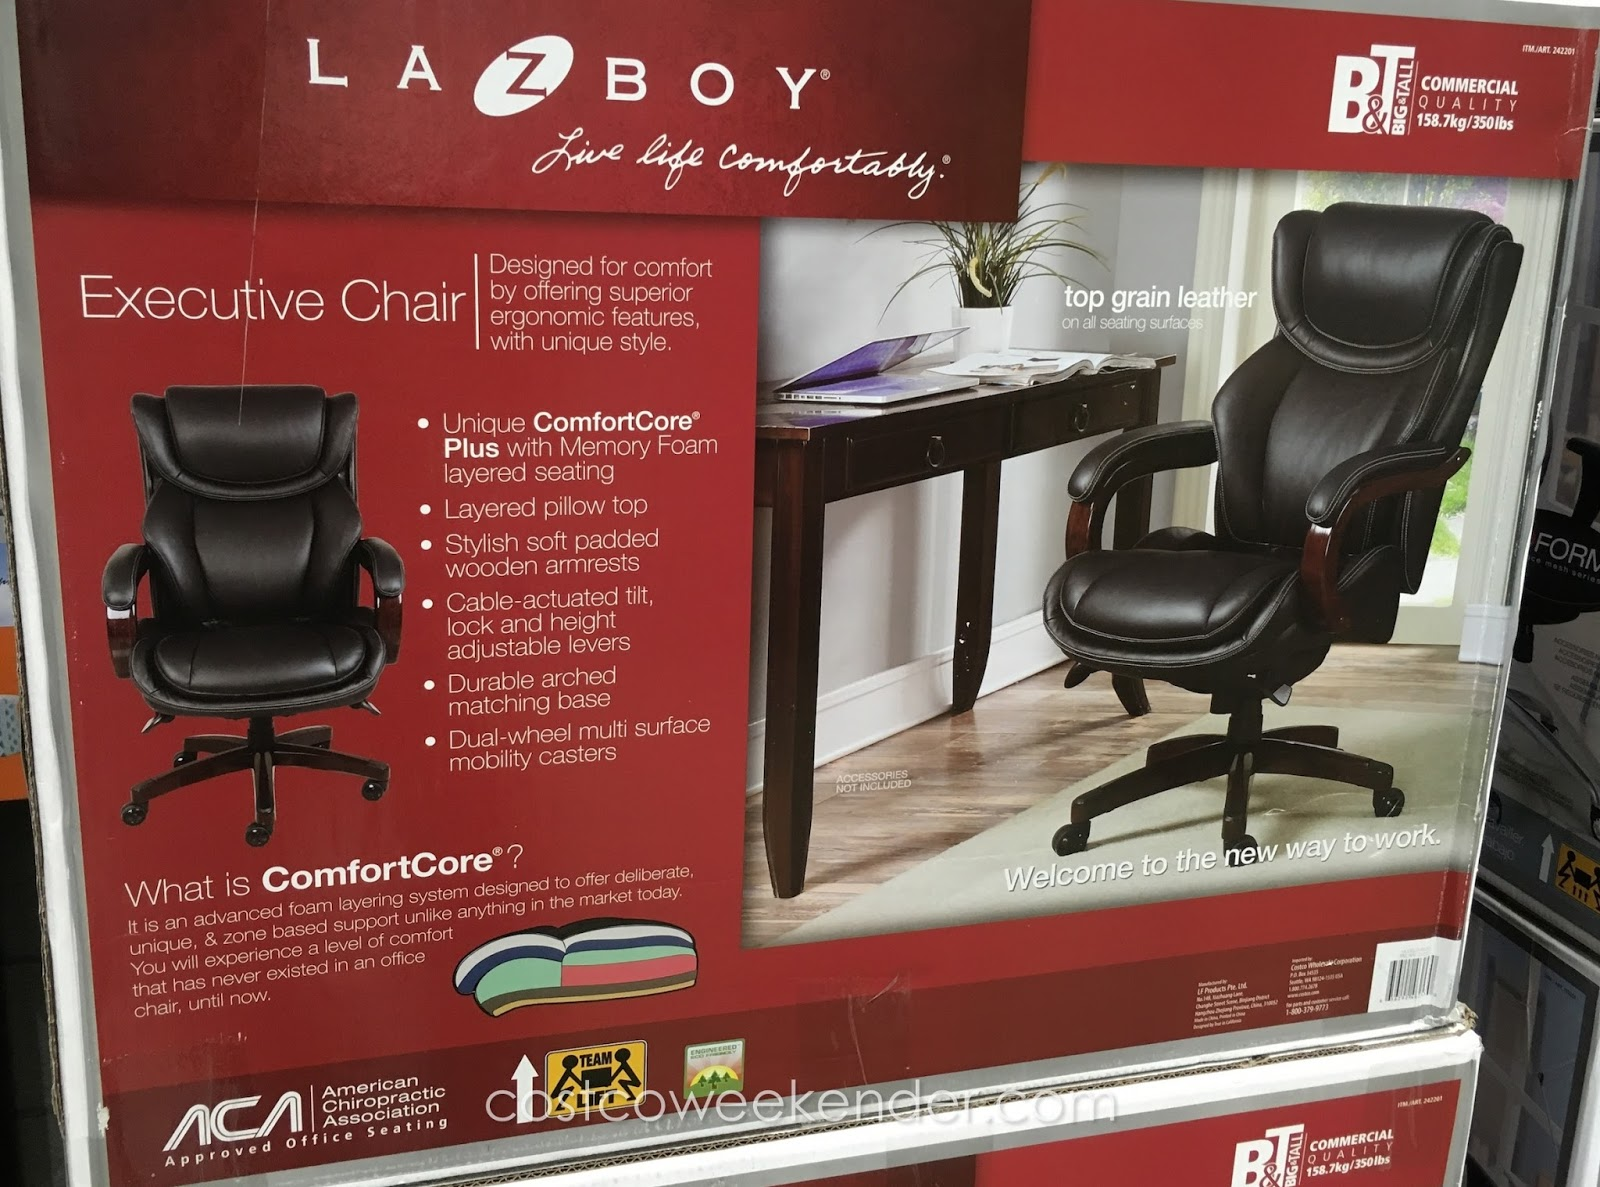 la z boy big tall executive leather office chair black beach umbrella with clamp top grain costco weekender